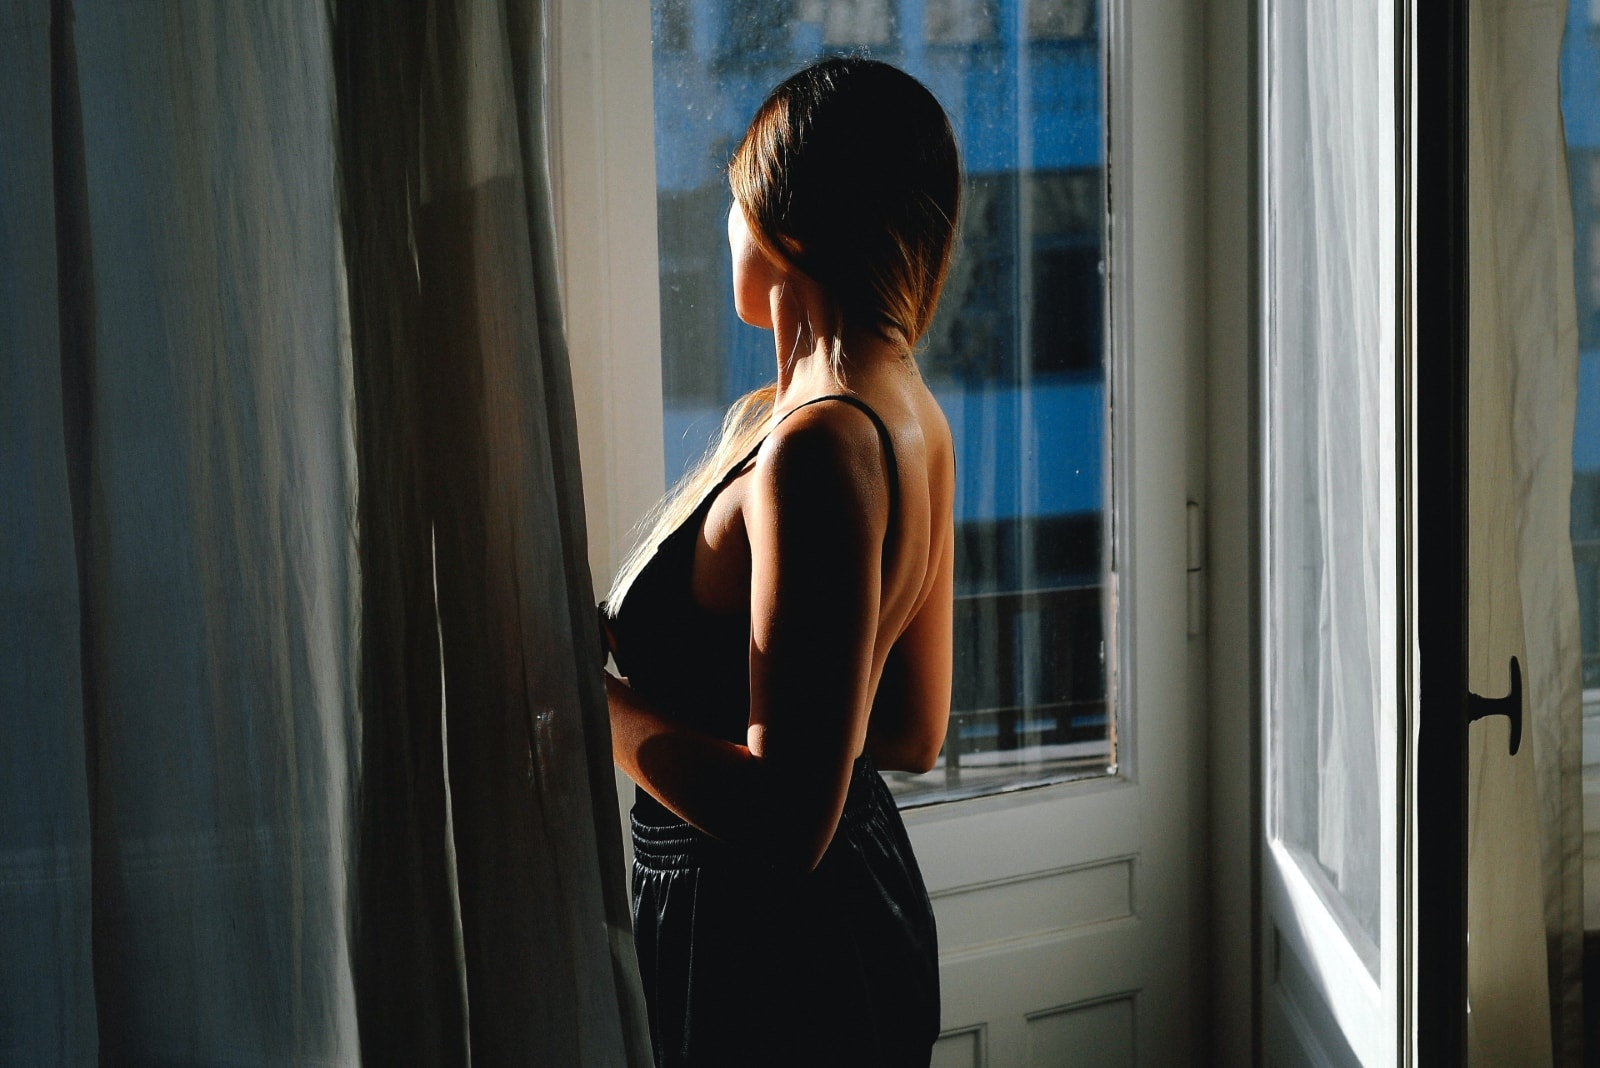 woman in black top standing near door looking outside